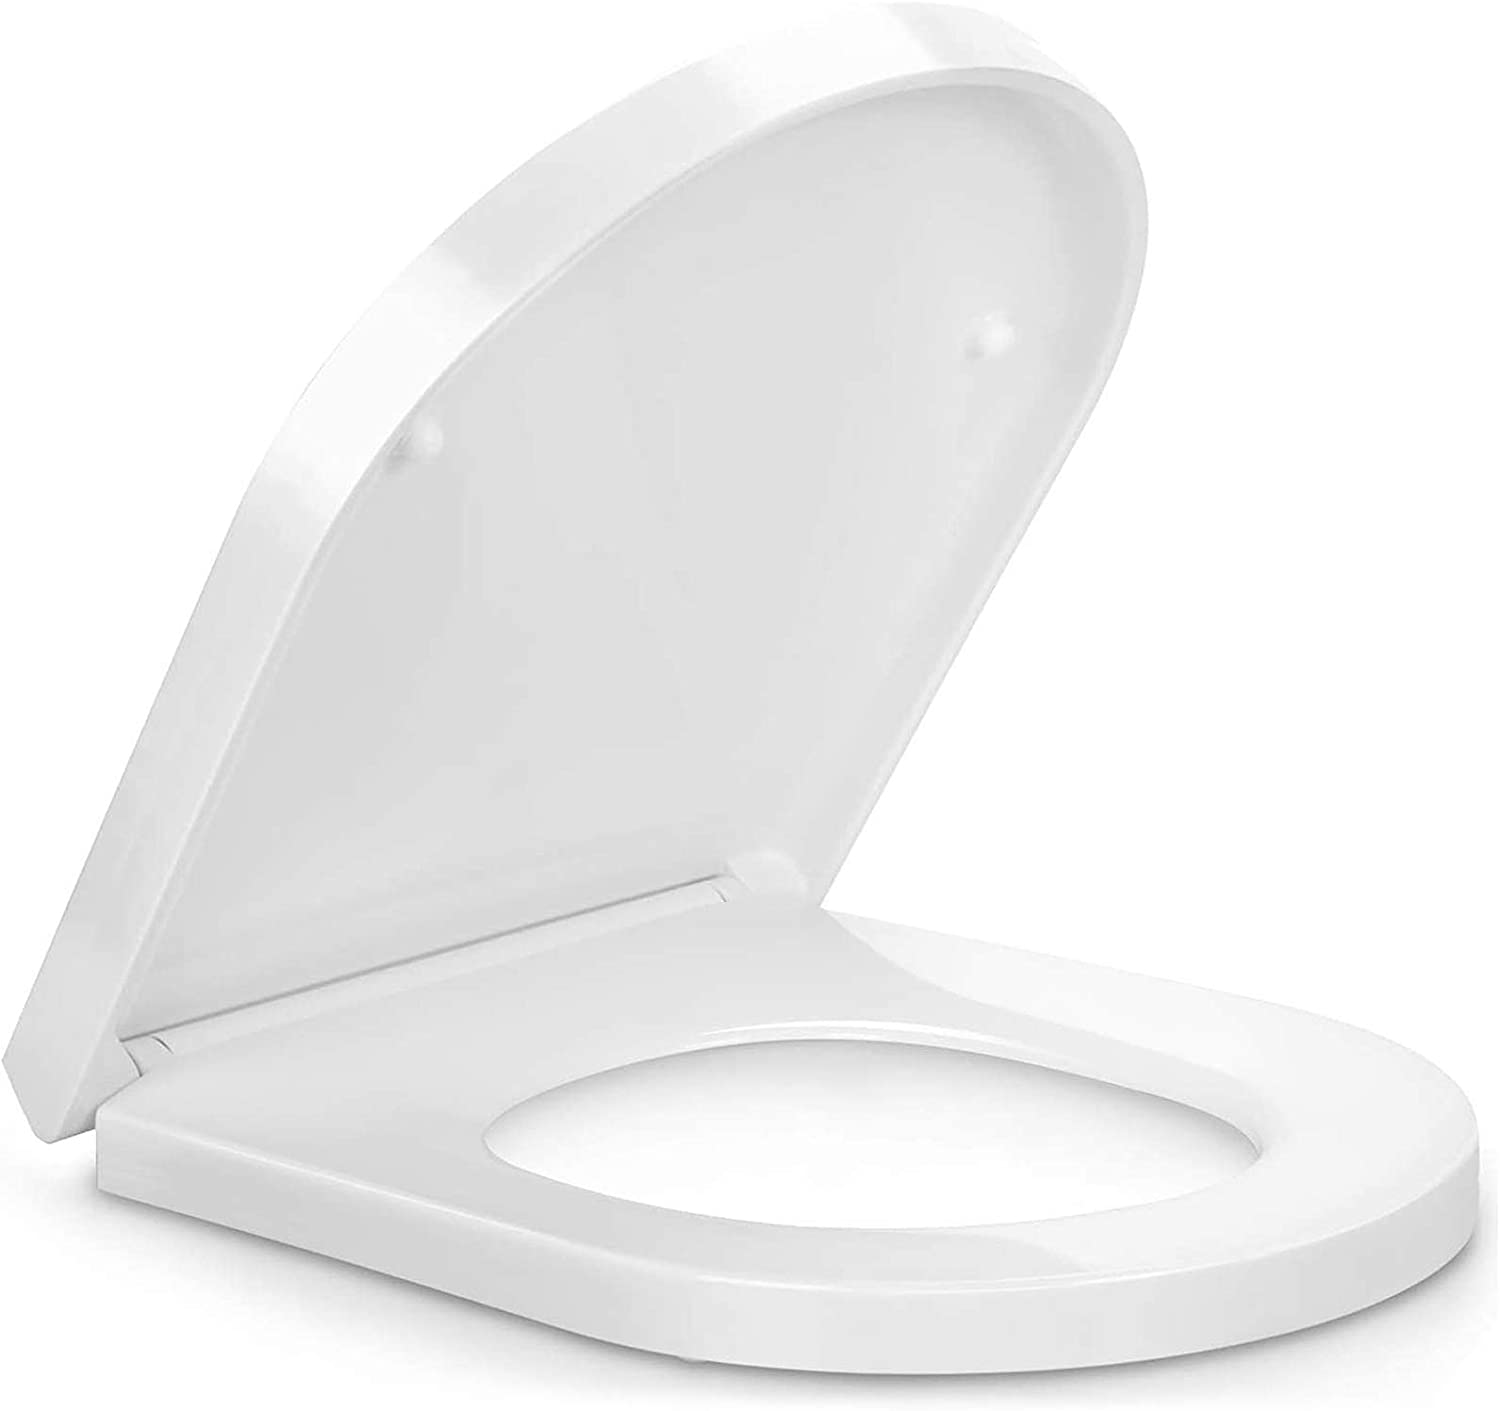 Soft Close Toilet Seat with Quick Release, Simple Top Fixing, Heavy Duty UF Material Anti-Bacterial Toilet Seats White with Adjustable Stainless Hinges, D Shape/U Shape Toilet Lid Loo Seat